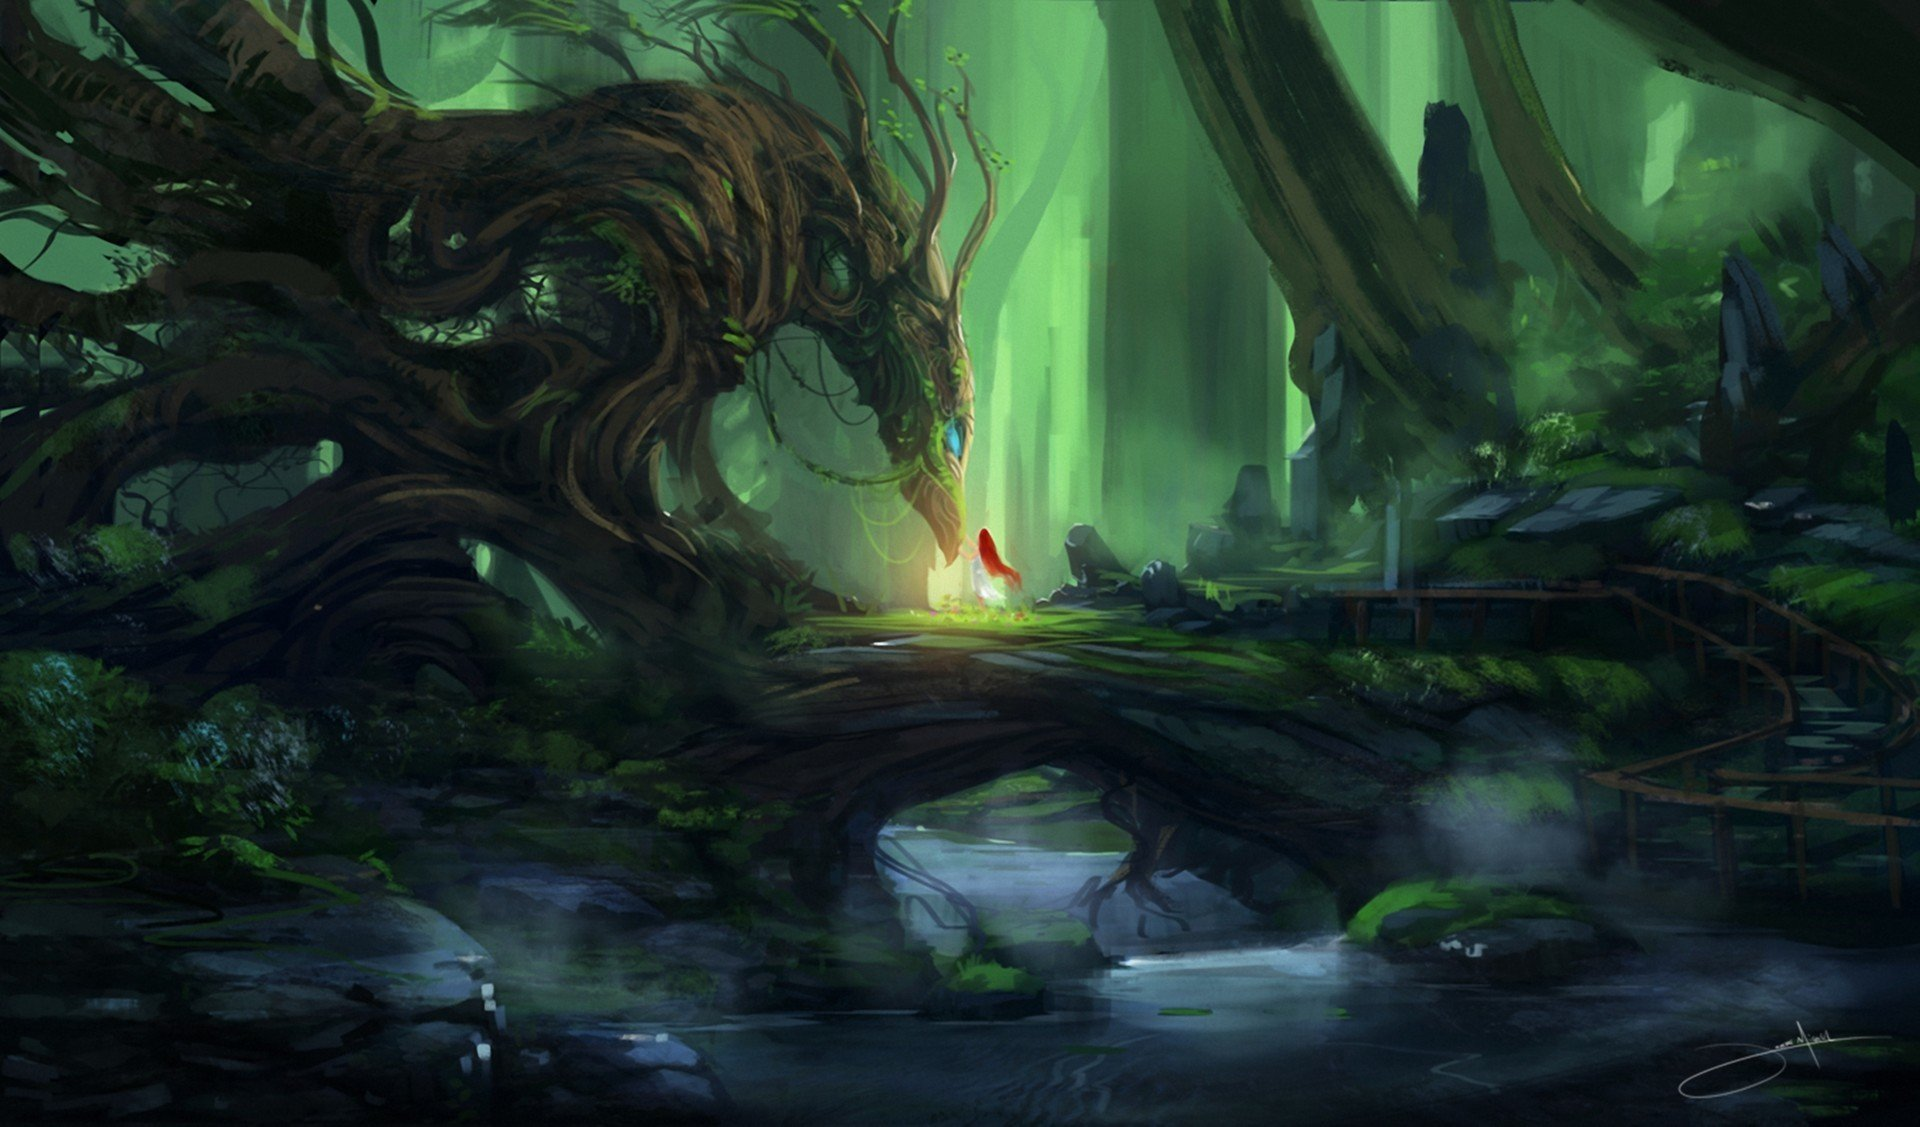 art-blinck-forest-dragon-girl-red-tree-creek-stones-guardian